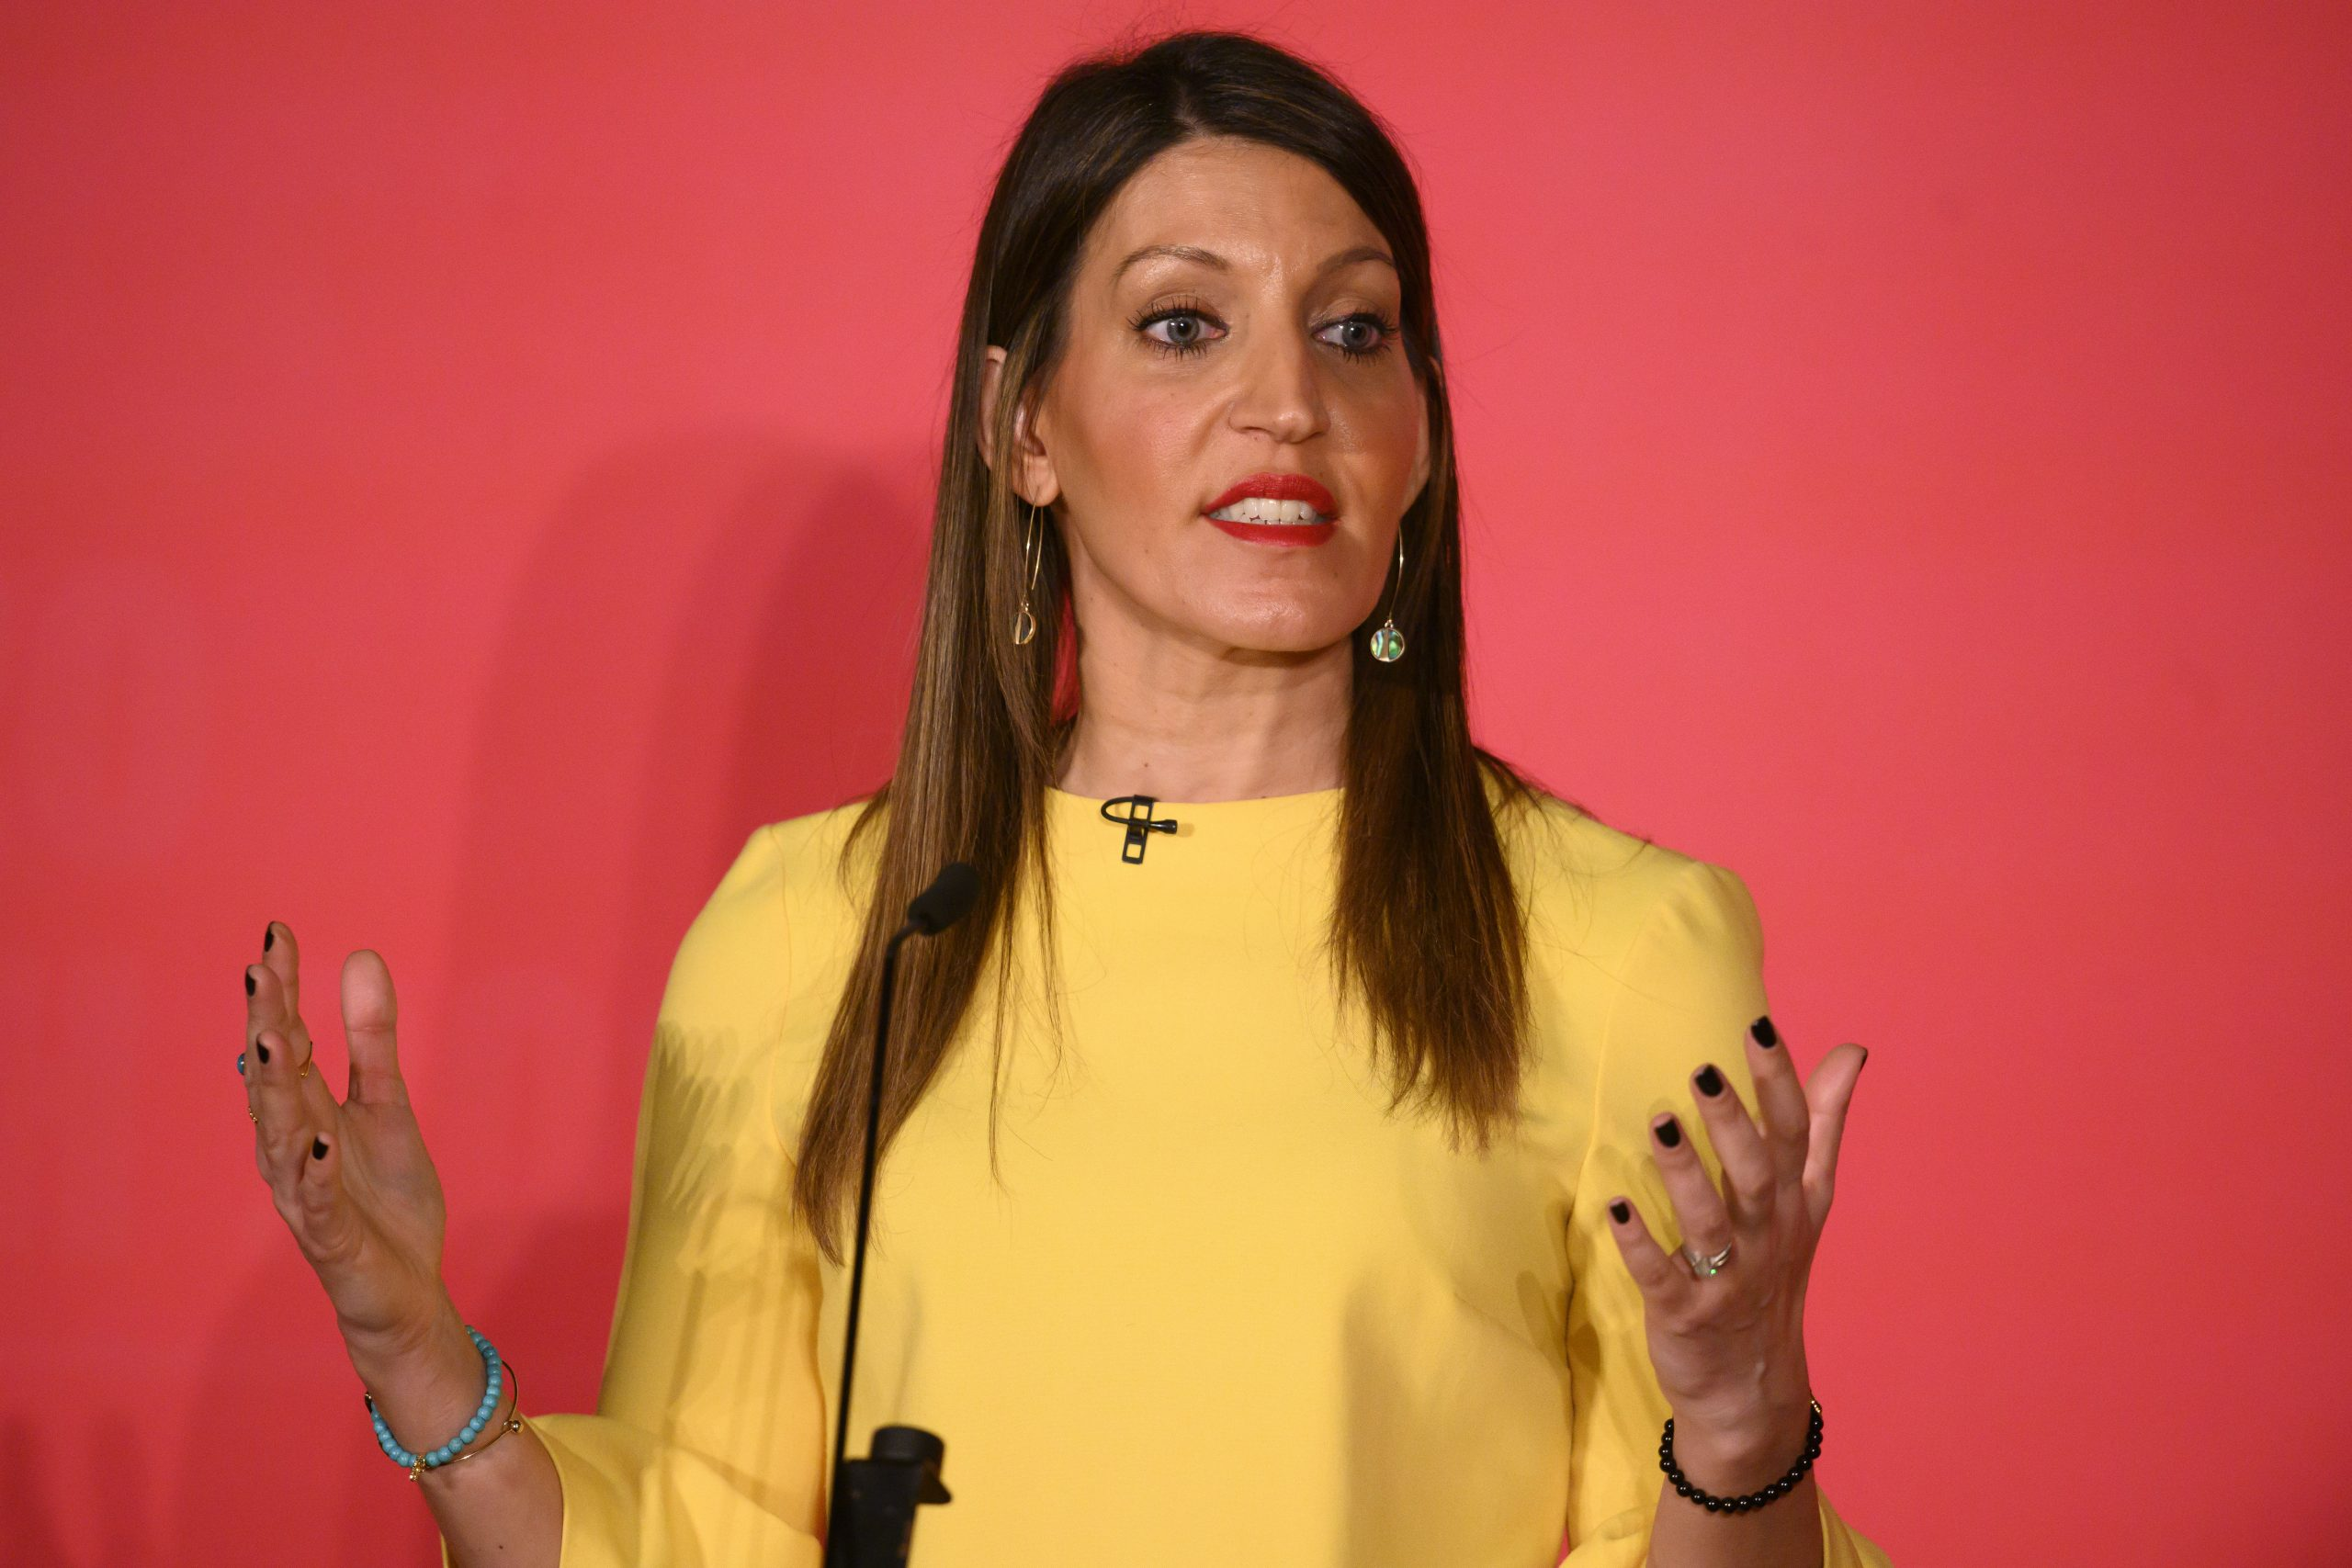 Rosena Allin-Khan, MP for Tooting, is standing as a candidate in the Labour Party deputy leadership election. (Photo by Matthew Horwood/Getty Images)